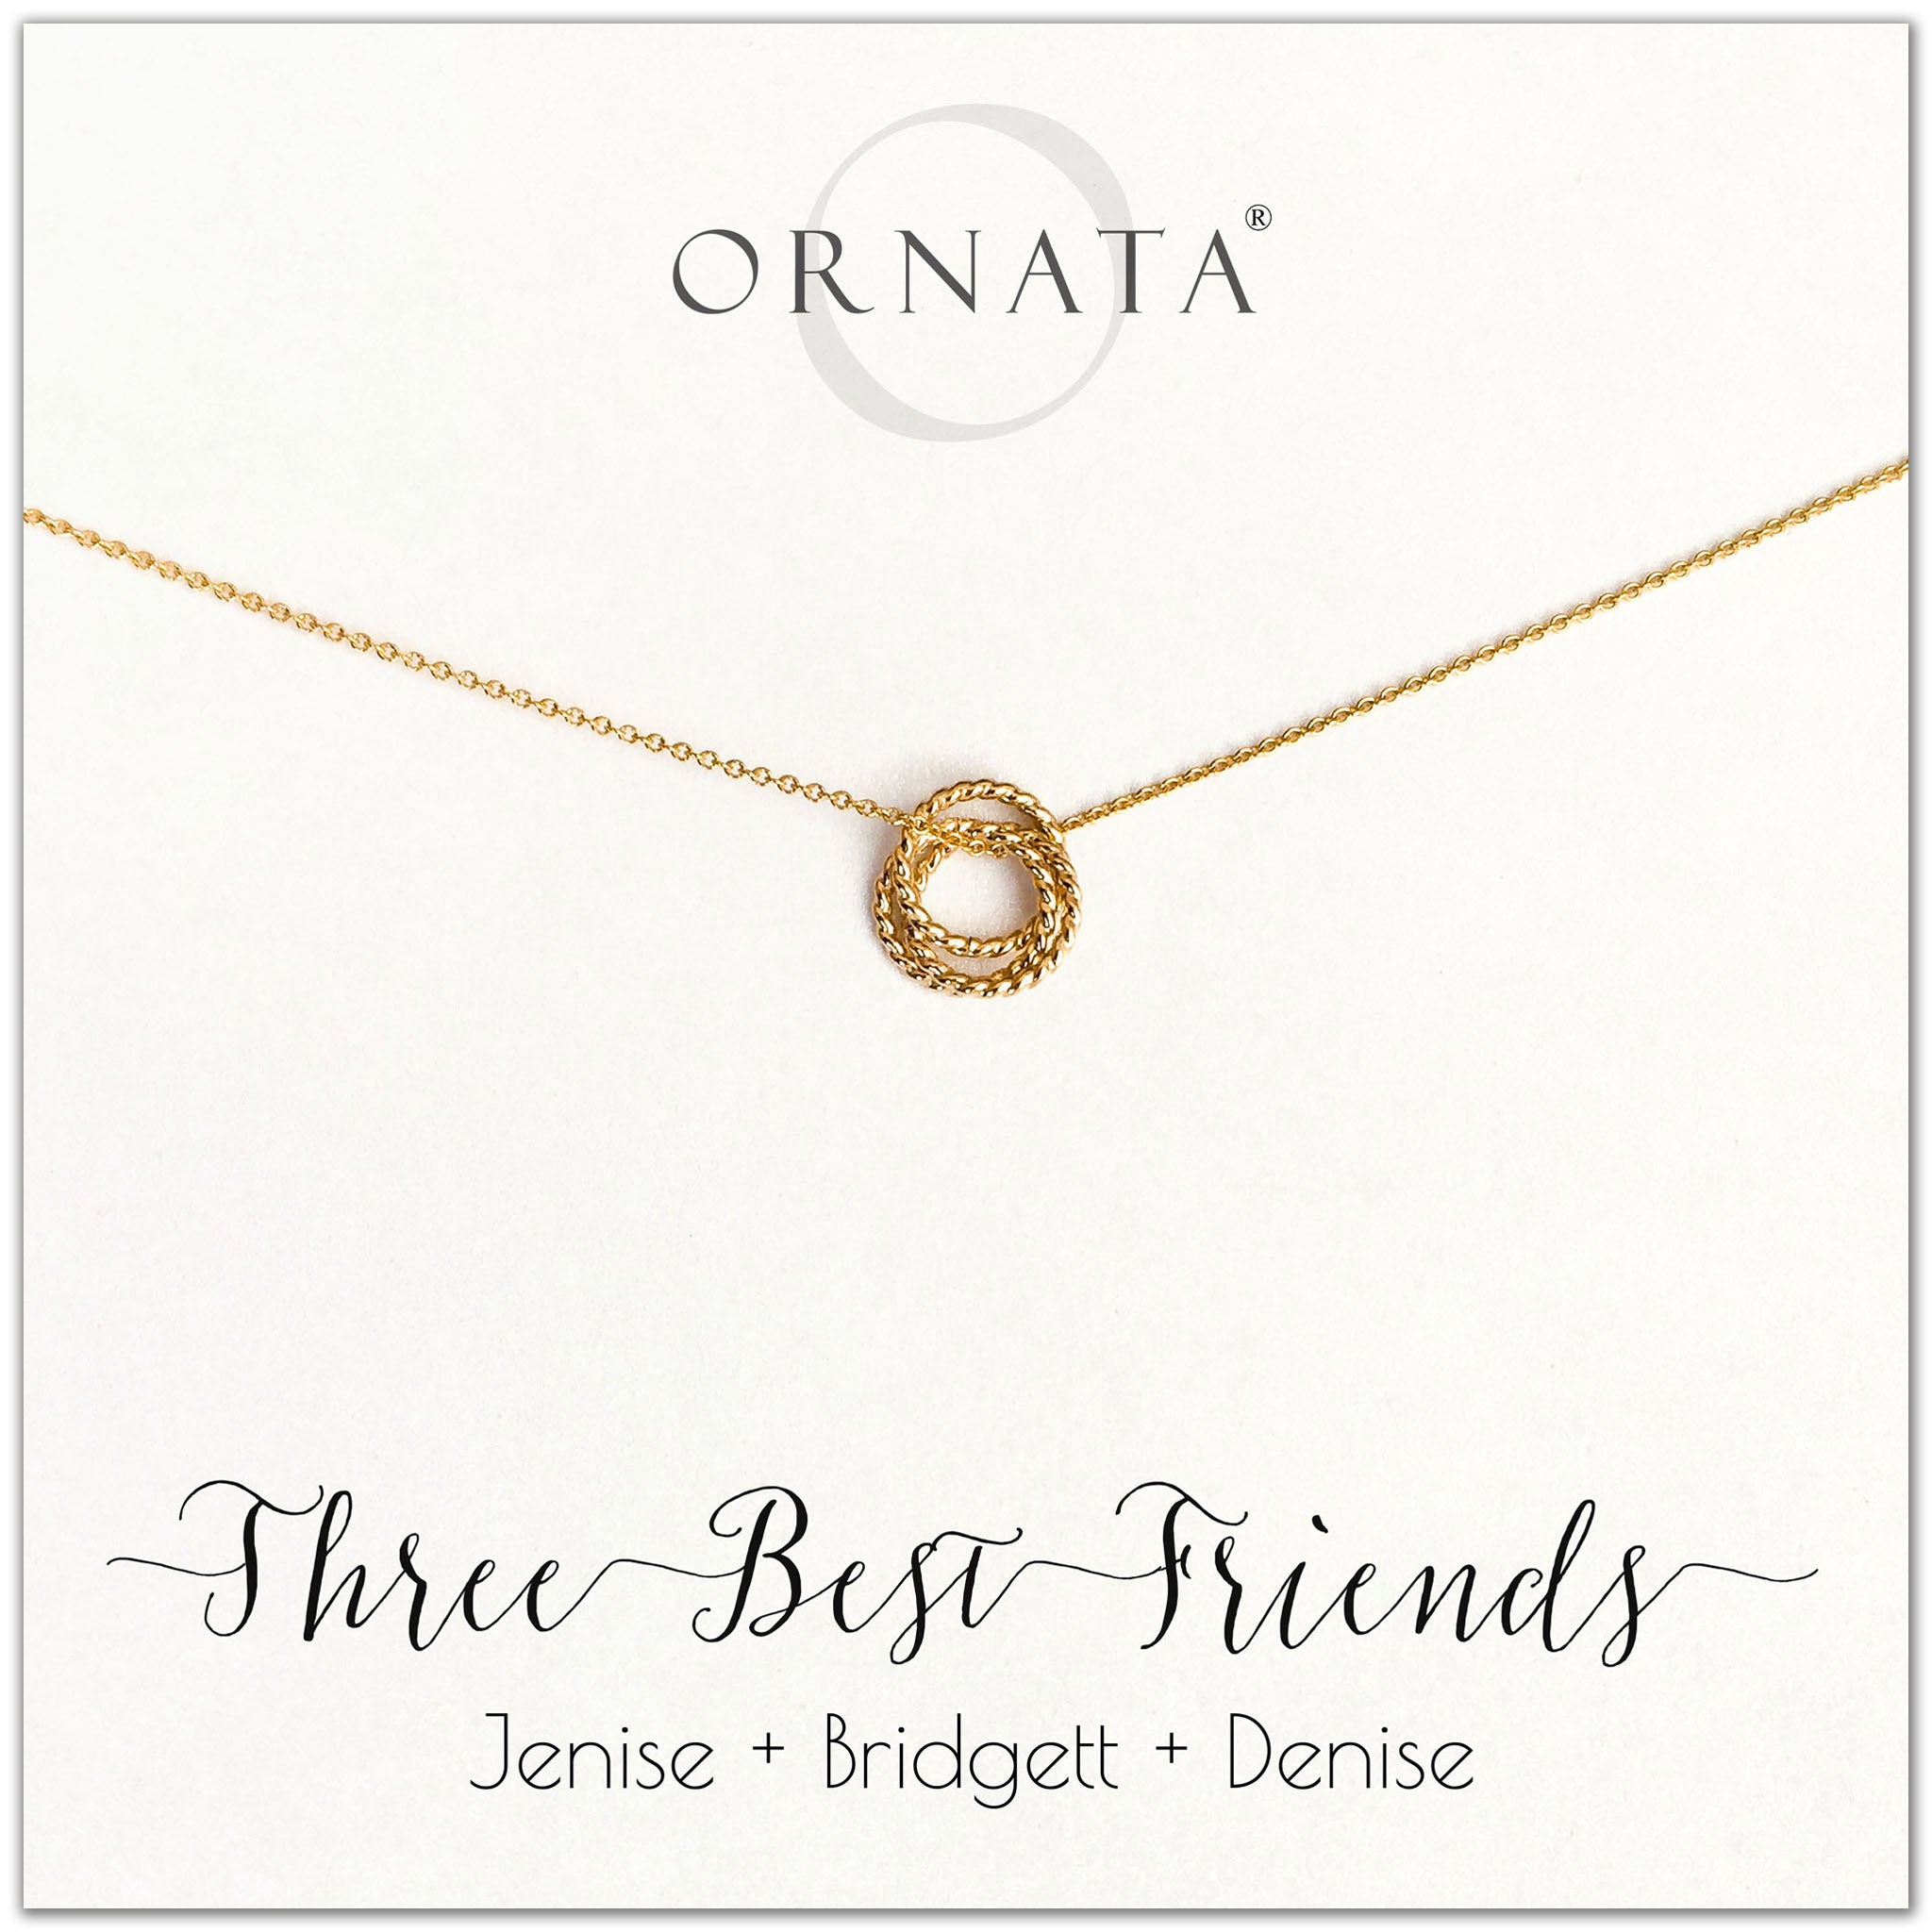 Personalized gold necklaces for three best friends. Our 14 karat gold filled custom jewelry is a perfect gift for a sister or best friend.